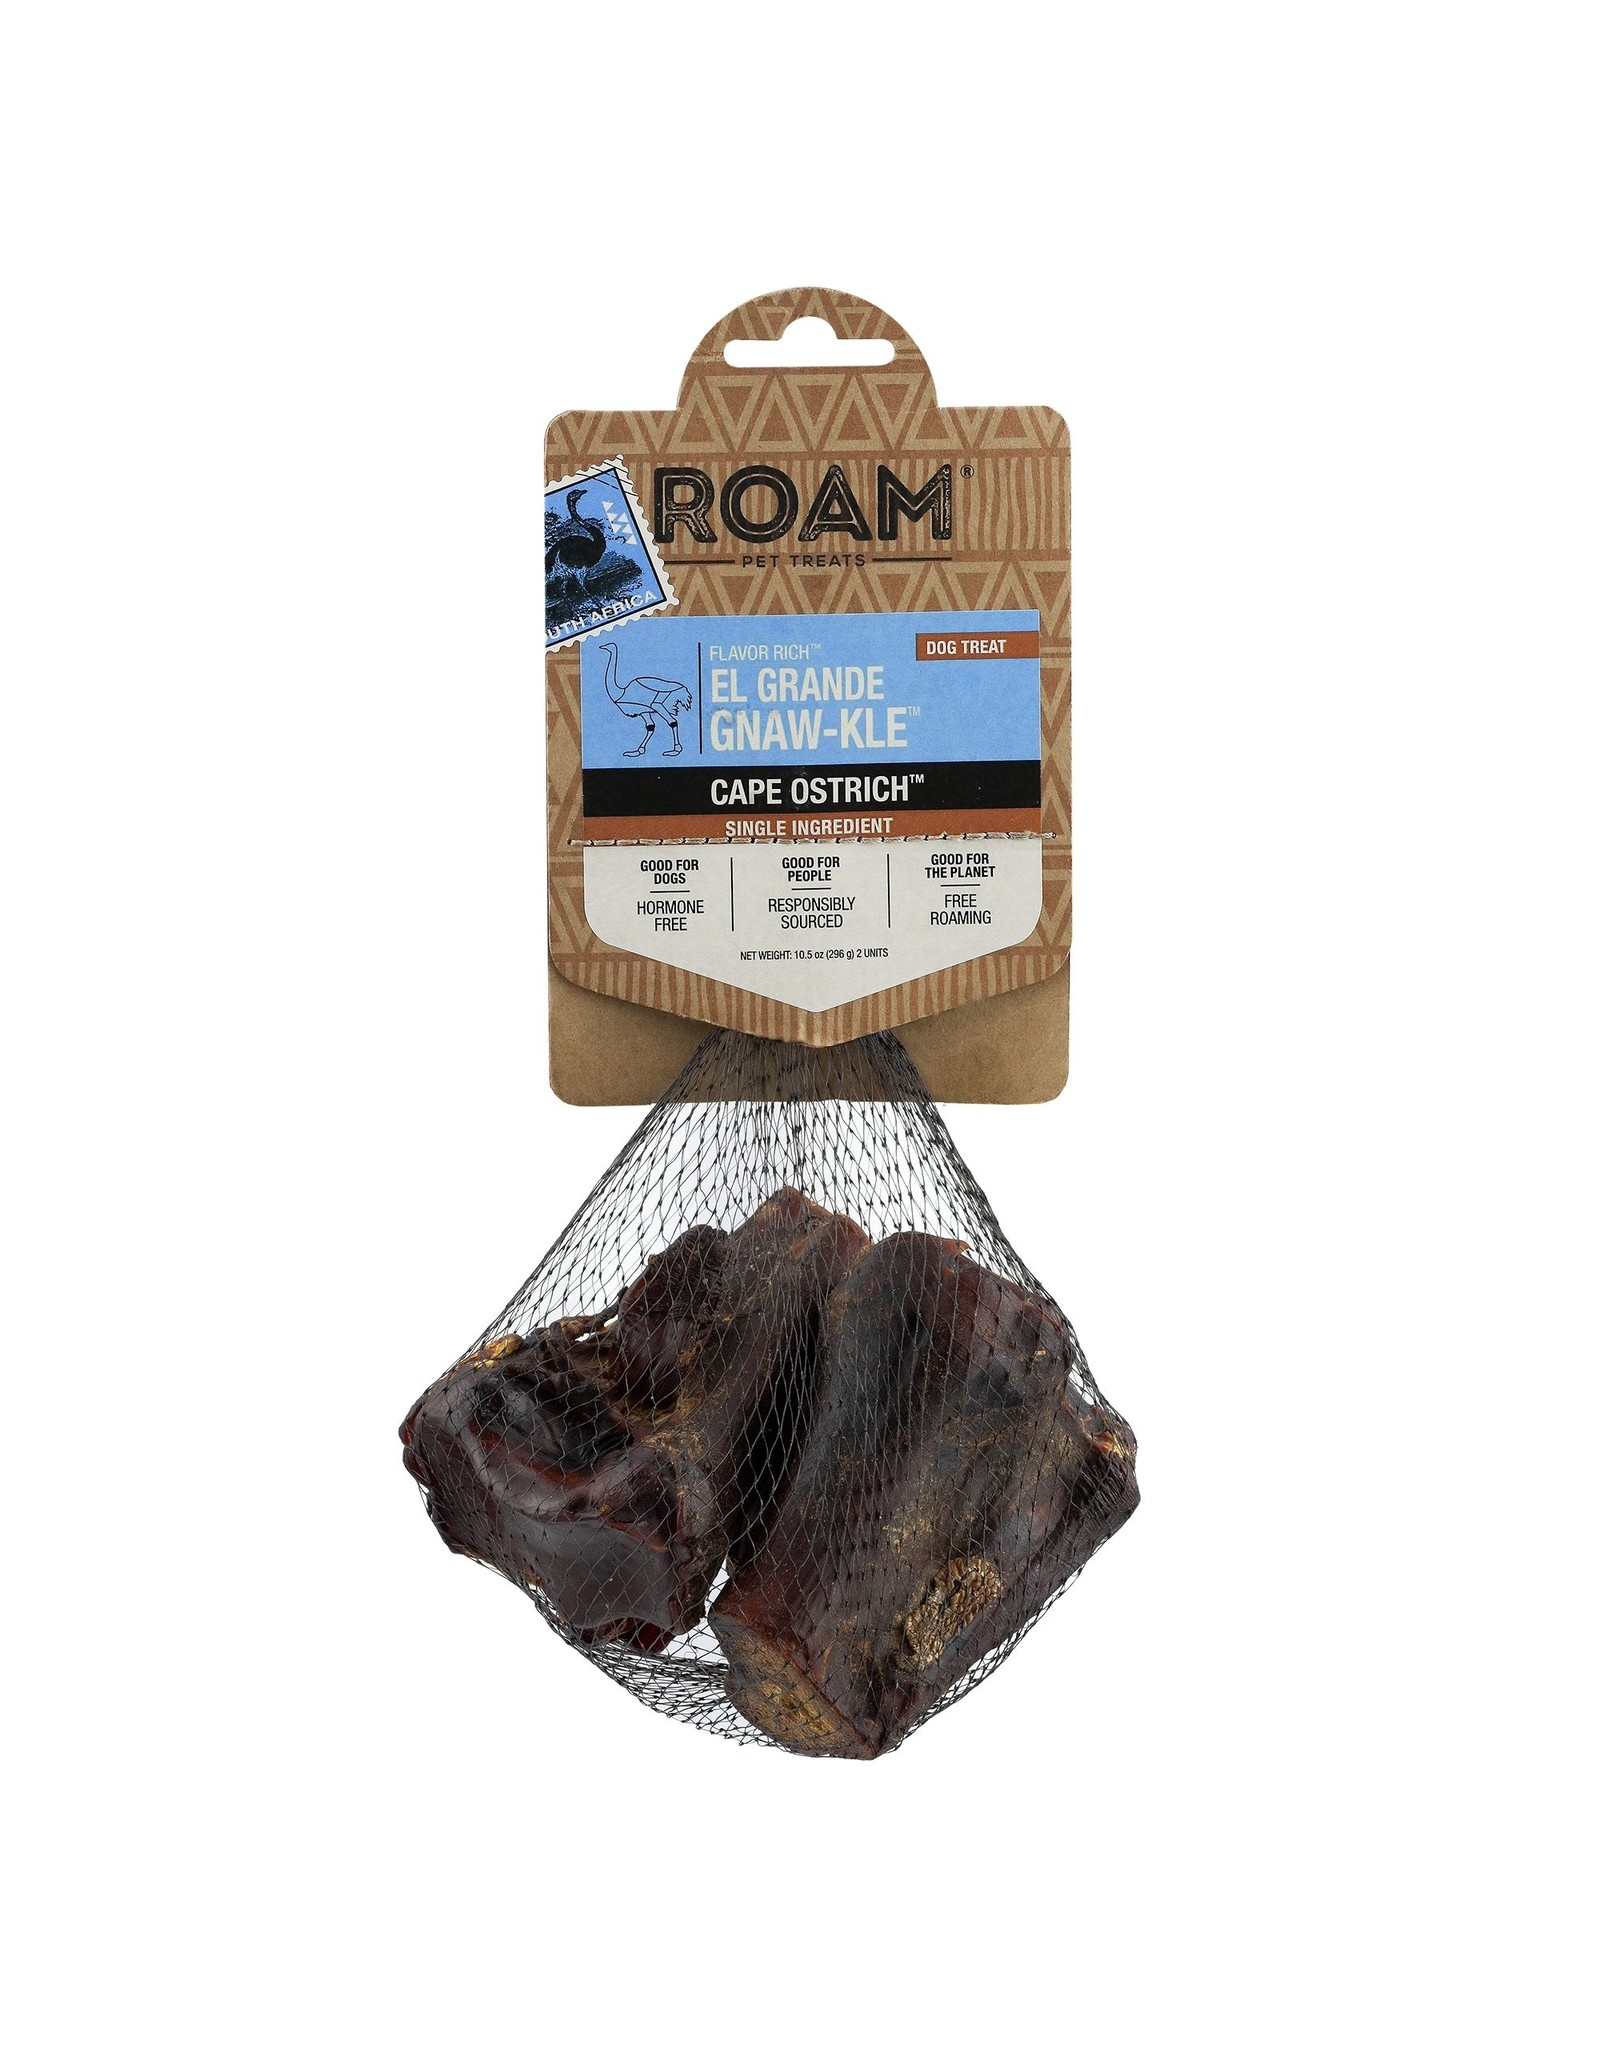 Roam Pet Treats ROAM PET TREATS CAPE OSTRICH EL GRANDE GNAW-KLE 2-COUNT